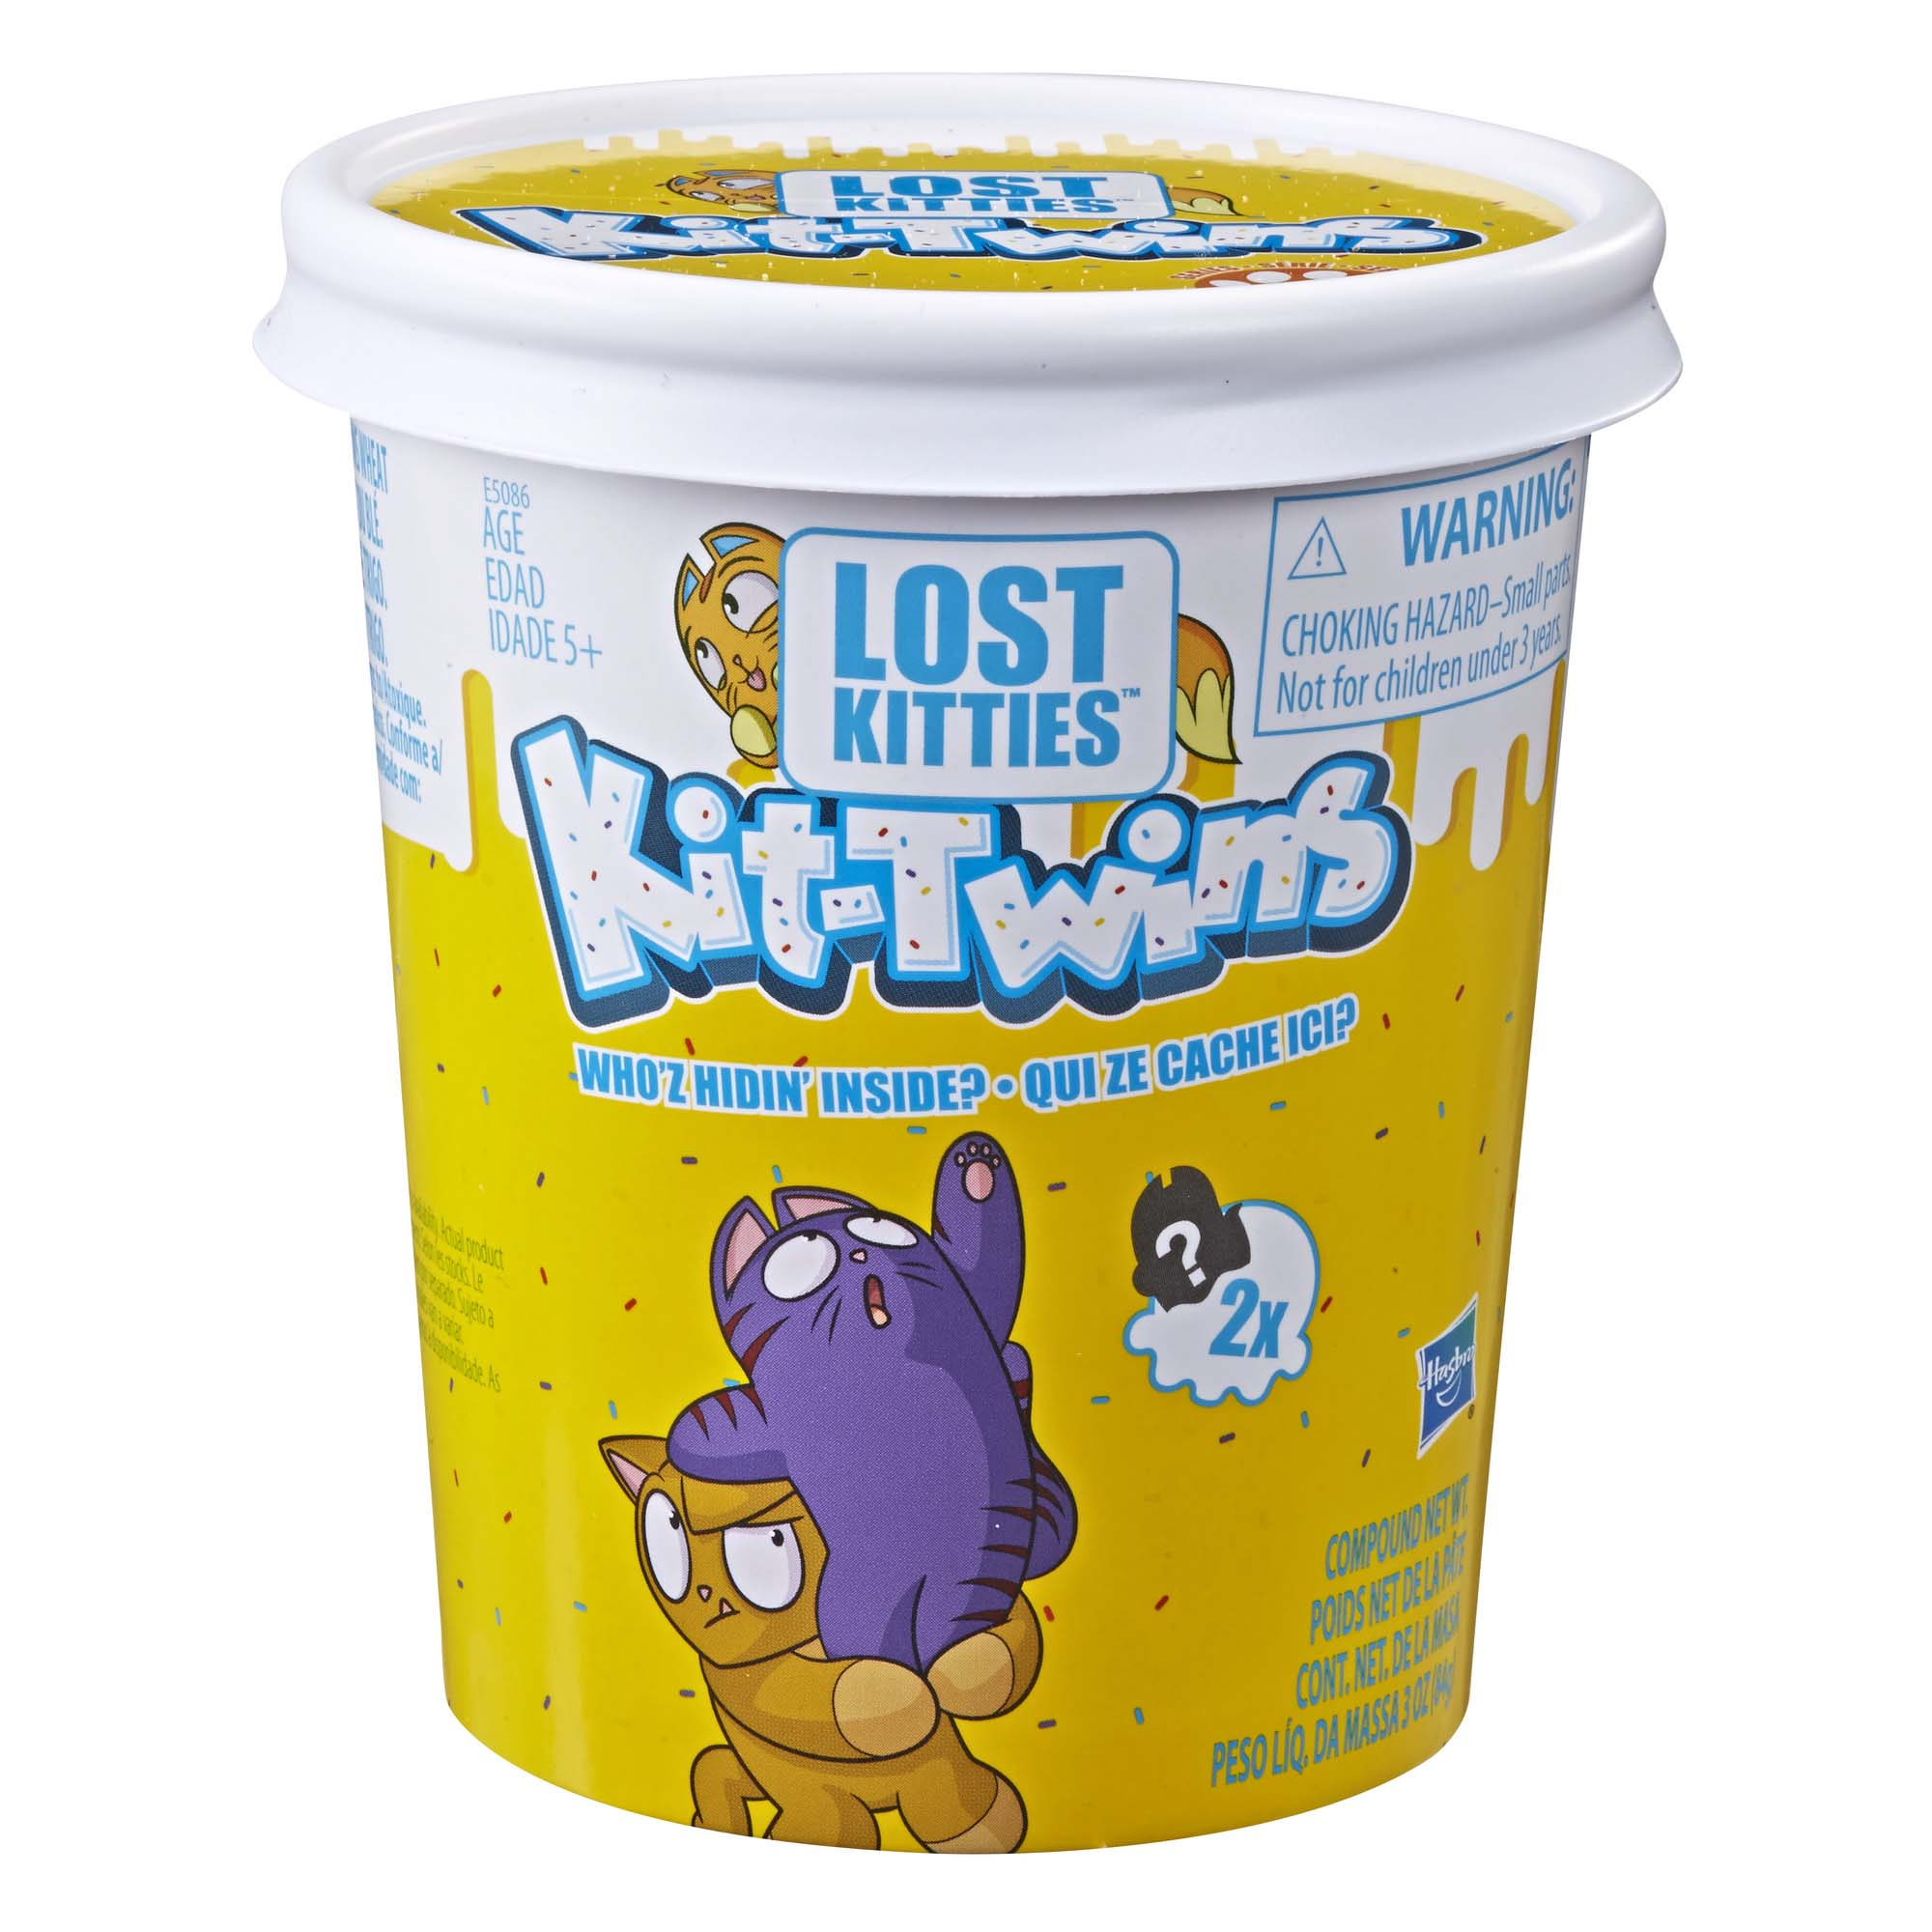 Lost Kitties Kit-Twins Toy, 36 pairs to collect, Ages 5 and Up